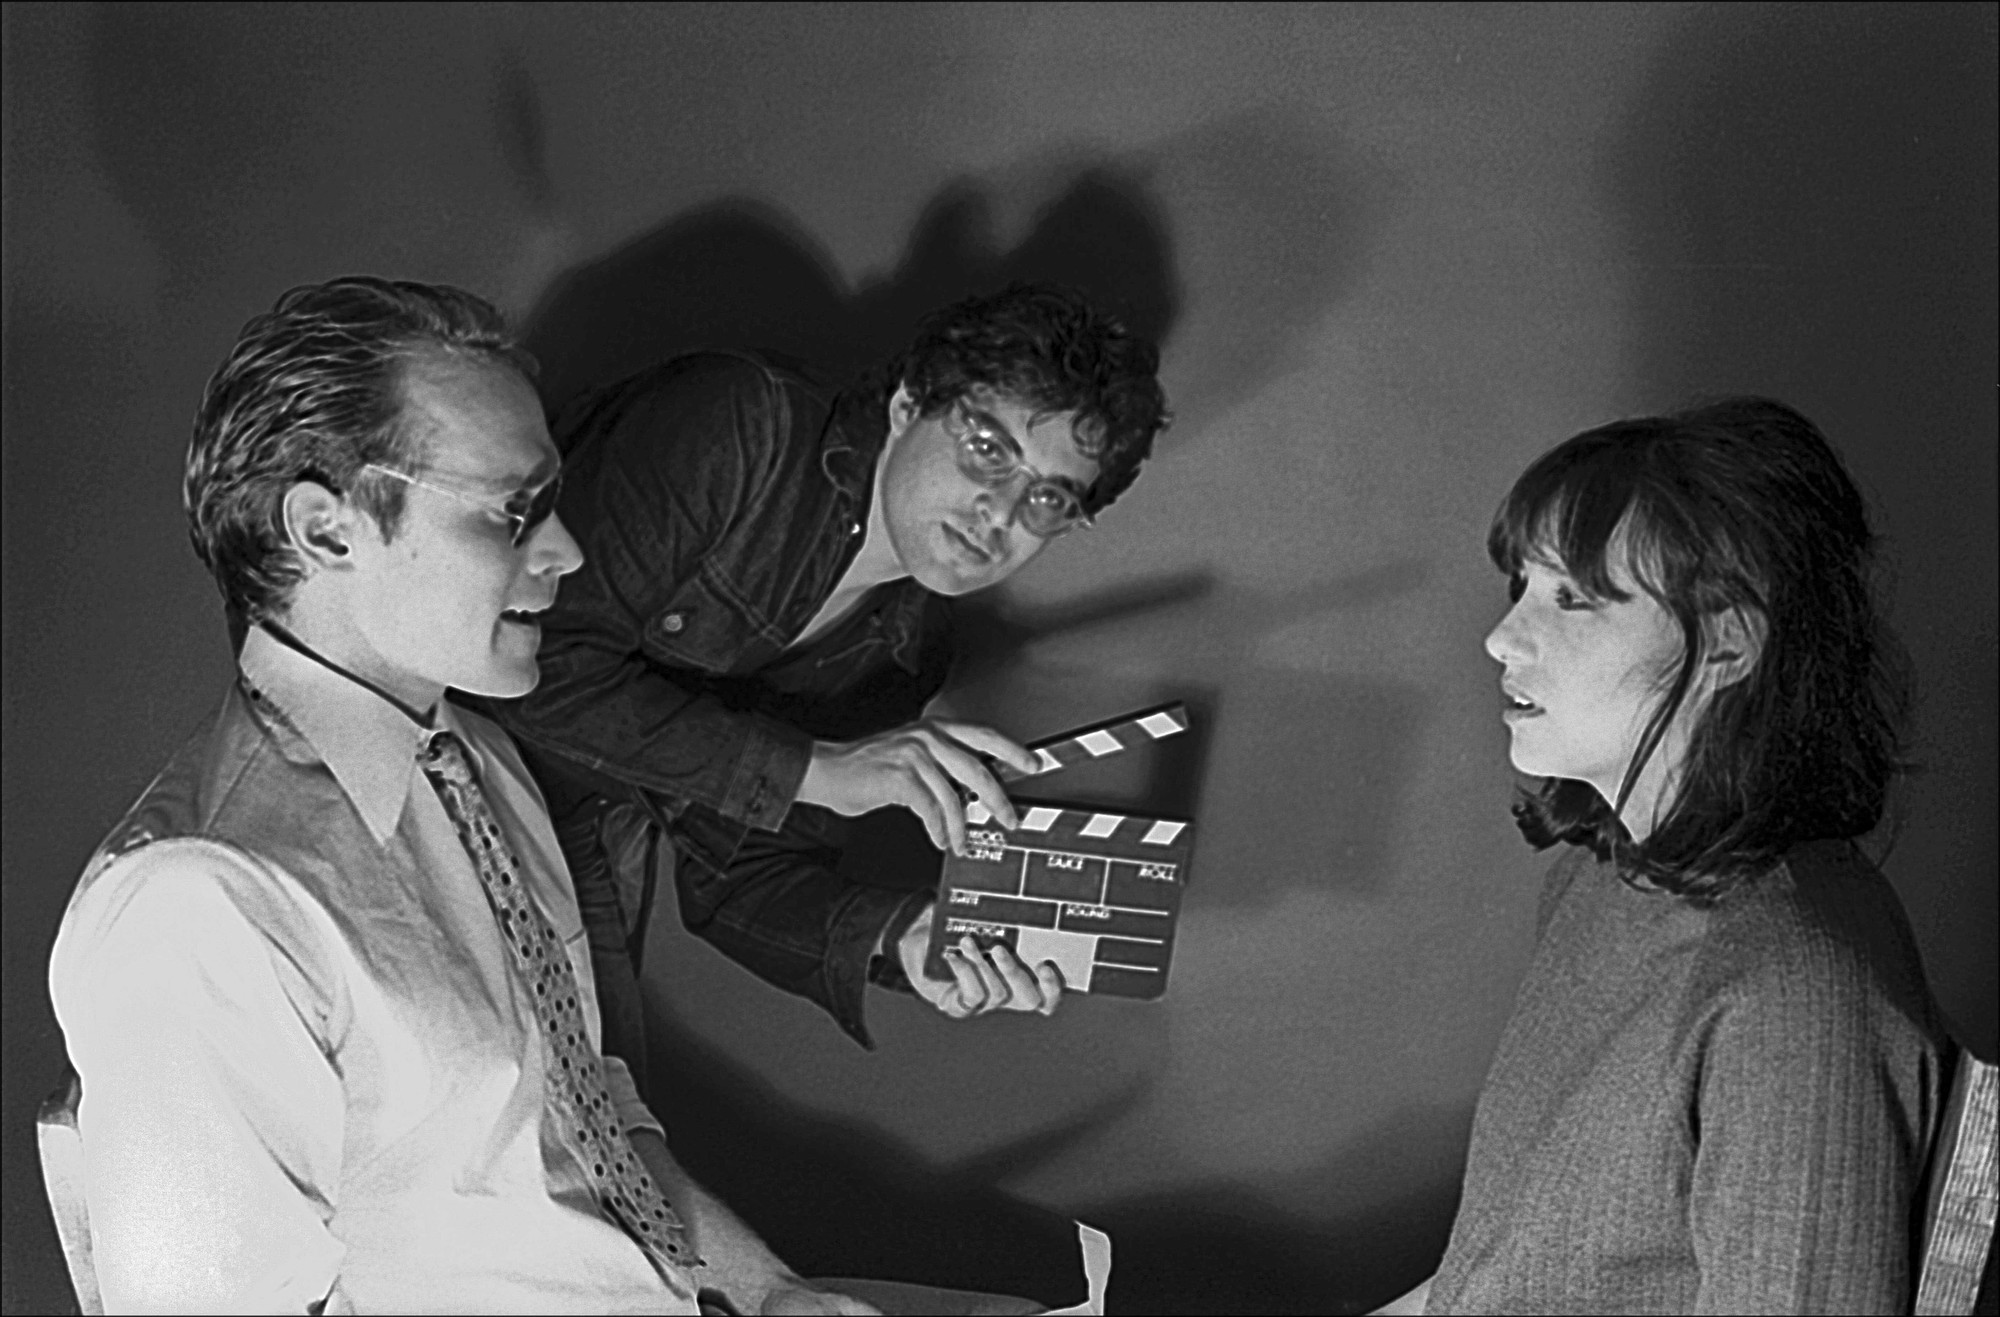 Will Patton, Michael Oblowitz and Rosemary Hochschild on the set of Minus Zero. 1979. USA. Directed by Oblowitz. Courtesy the artist